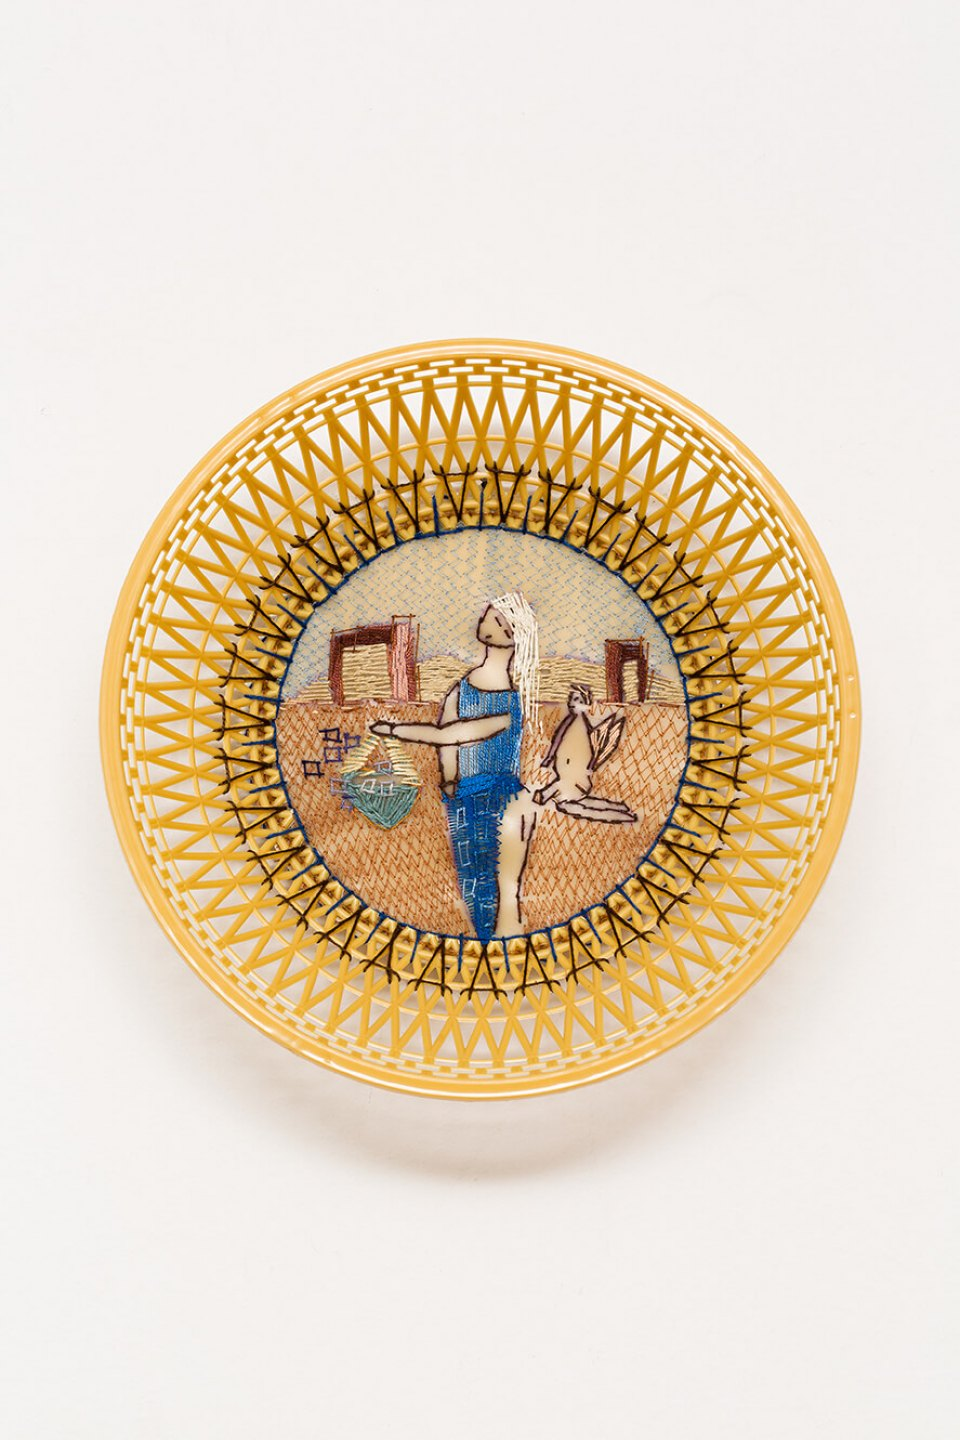 f.marquespeteado, <em>Ninfa e anjo safado, from Wedgwood erótica series, </em>2009, plastic basket, hand and machine embroidery PVC, 7,5 × 24 cm ø - Mendes Wood DM